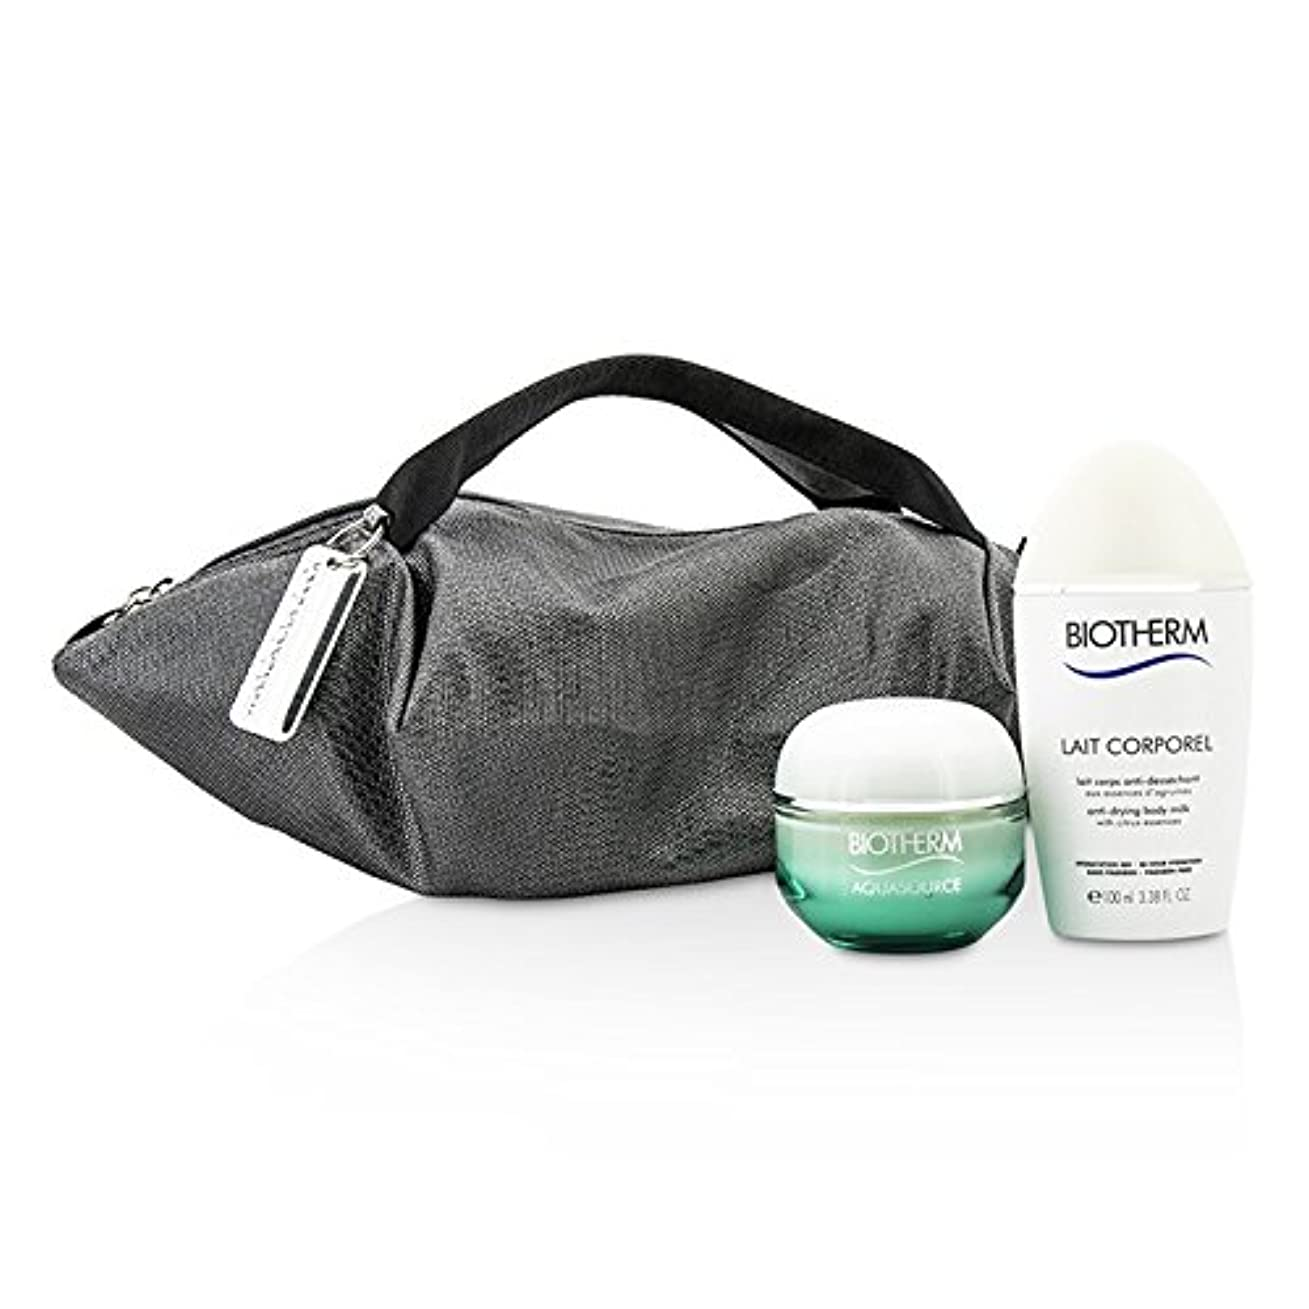 担当者処理湿地ビオテルム Aquasource & Body Care X Mandarina Duck Coffret: Cream N/C 50ml + Anti-Drying Body Care 100ml + Handle Bag...